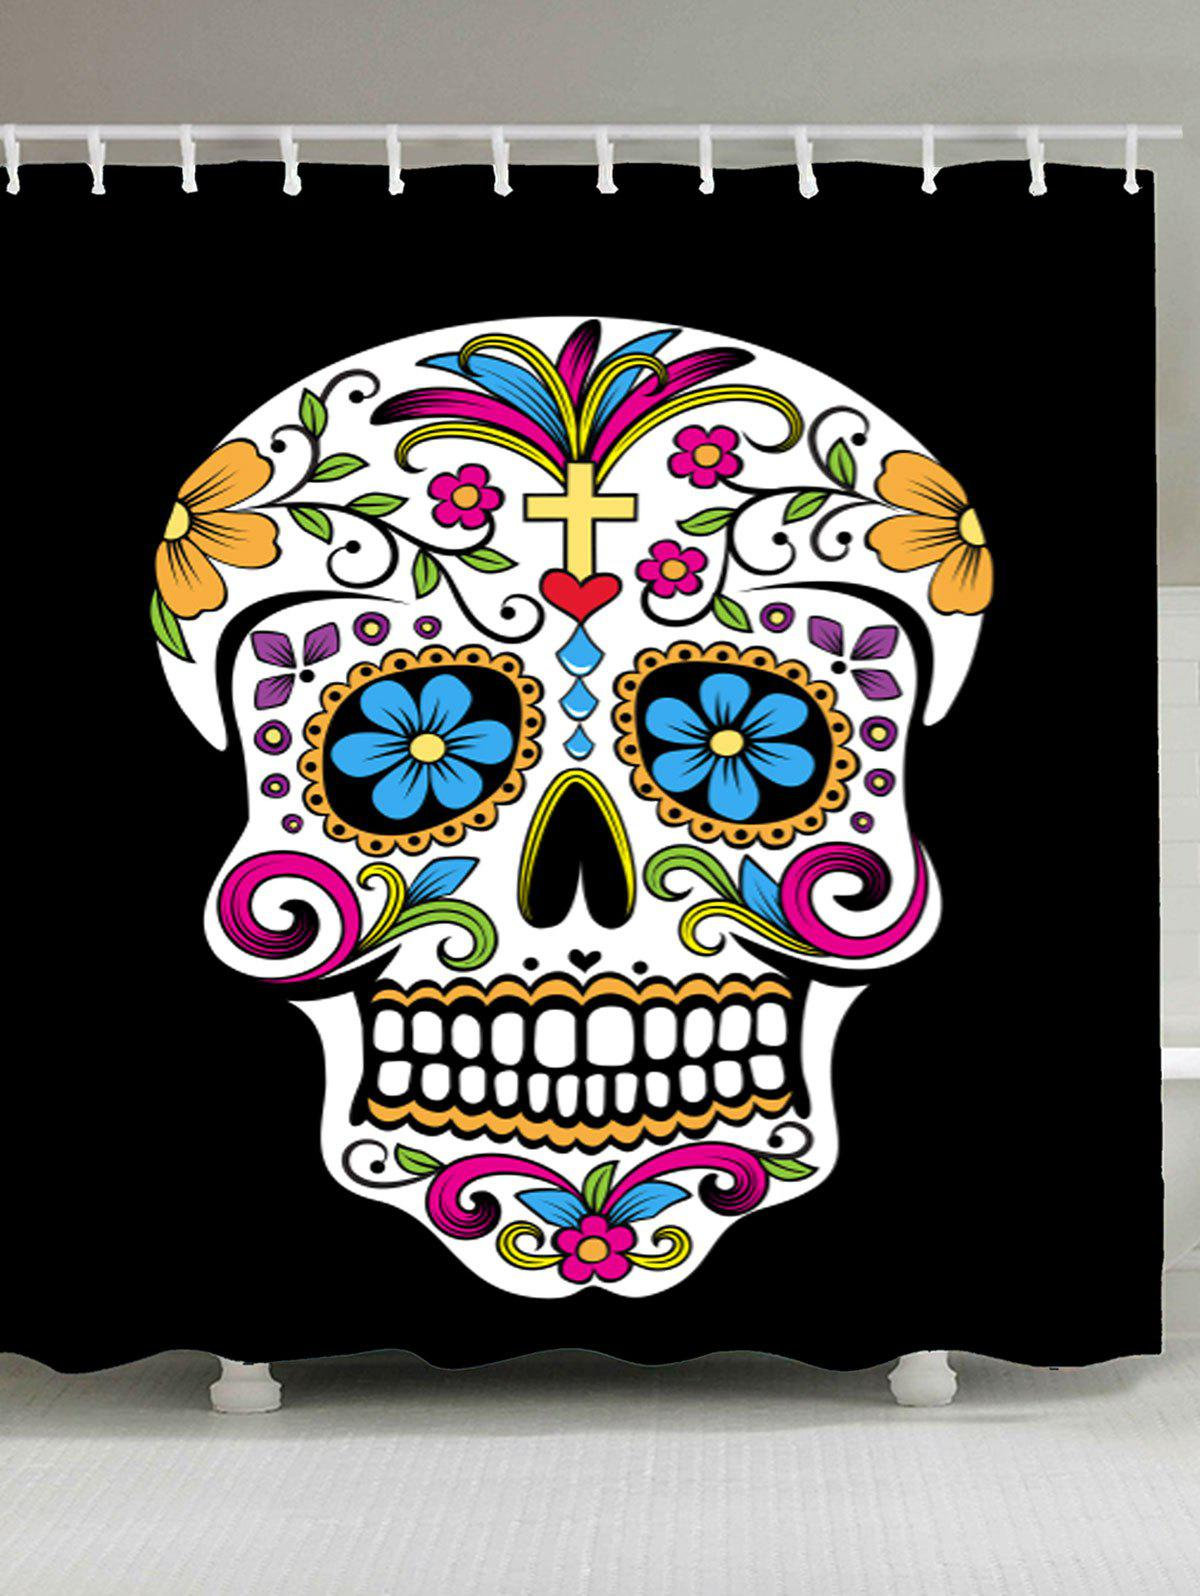 Skull Floral Waterproof Fabric Shower CurtainHOME<br><br>Size: W71 INCH * L79 INCH; Color: COLORFUL; Products Type: Shower Curtains; Materials: Polyester; Pattern: Skull; Style: Gothic; Number of Hook Holes: W59 inch*L71 inch: 10; W65 inch*L71 inch:12; W71 inch*L71 inch: 12; W71 inch*L79 inch: 12; Package Contents: 1 x Shower Curtain 1 x Hooks (Set);